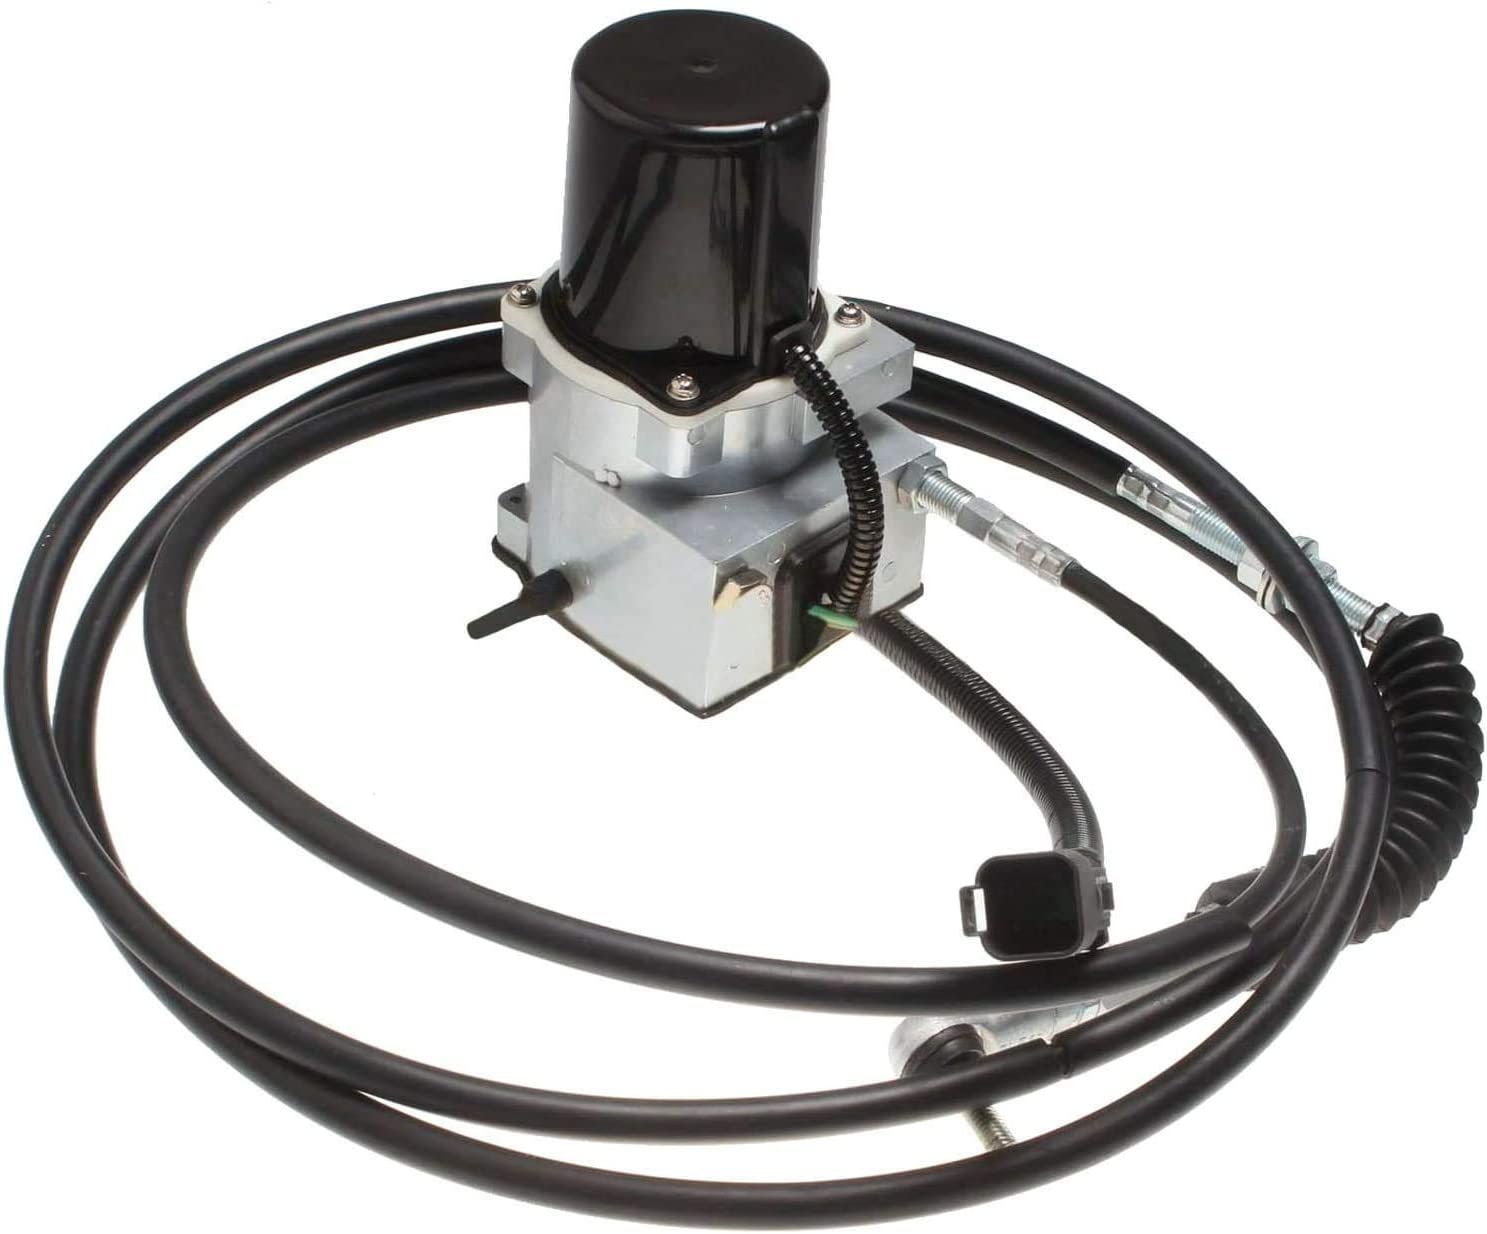 For Our shop OFFers the best service Hyundai Excavator R160LC-3 R290LC-7 Motor Trust Throttle R320LC-7